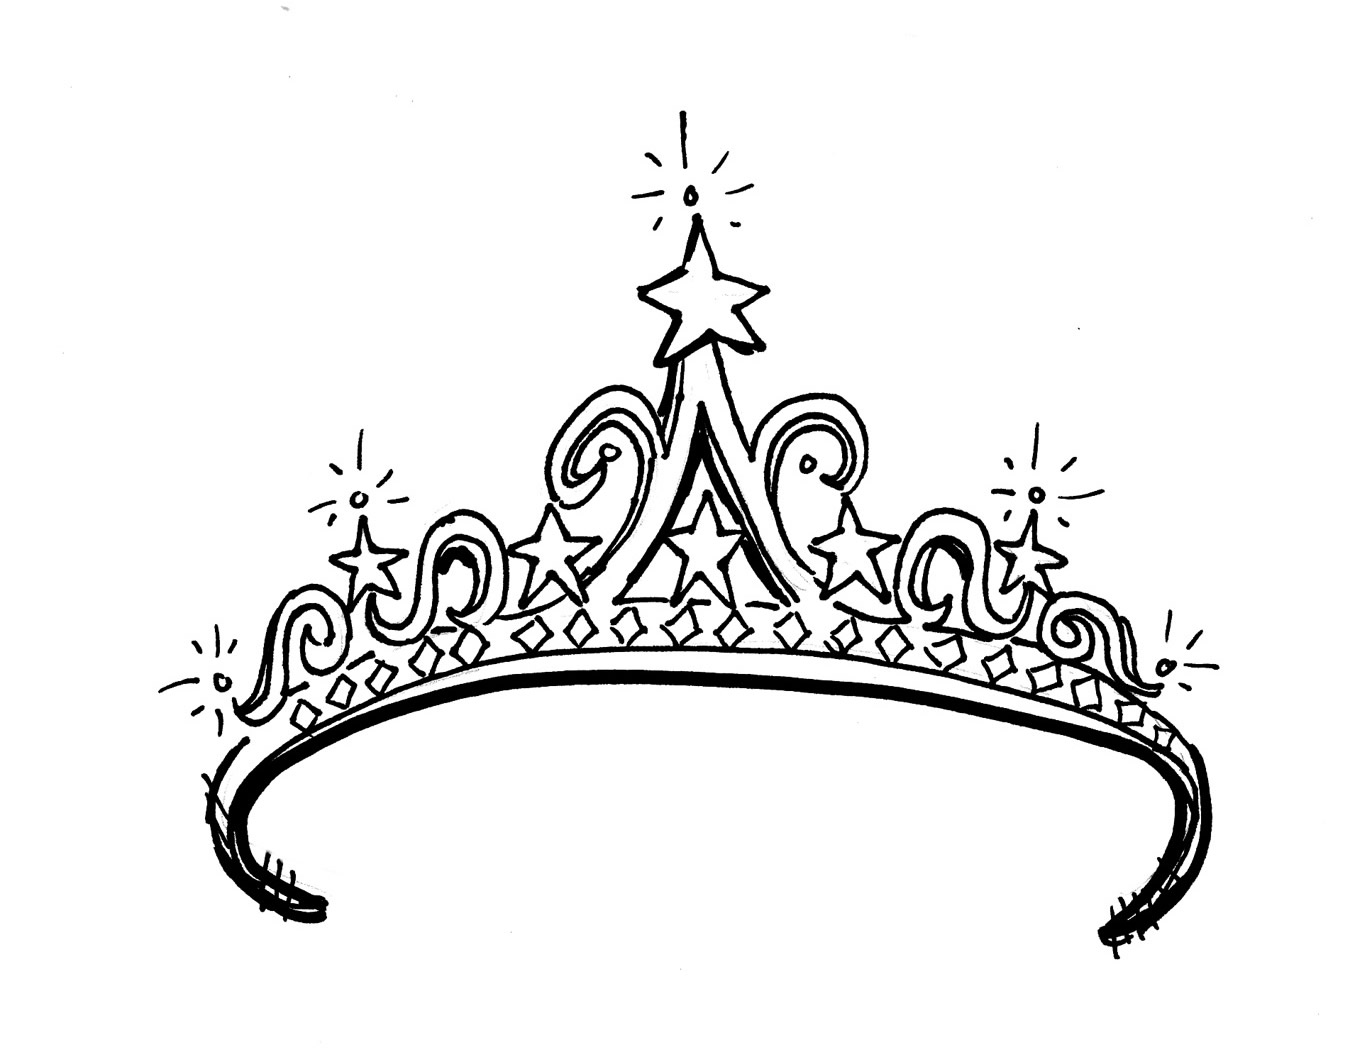 Prince And Princess Clipart . Tiara Blac-Prince And Princess Clipart . Tiara black princess crown .-9